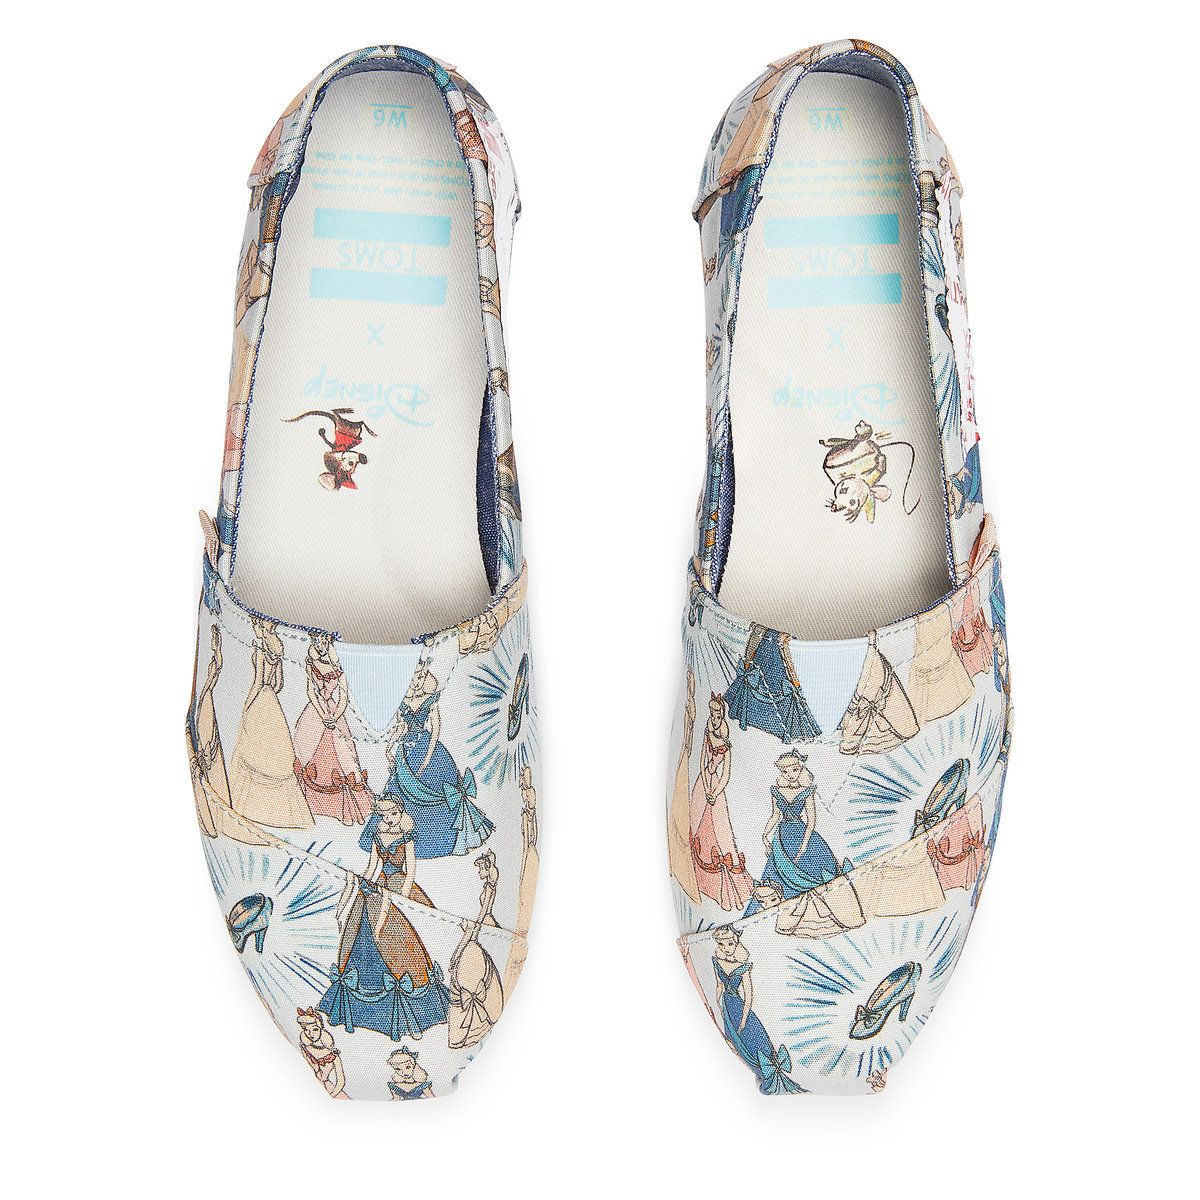 5b9e883066e Product Image of Cinderella Alpargatas Shoes for Women by TOMS   2